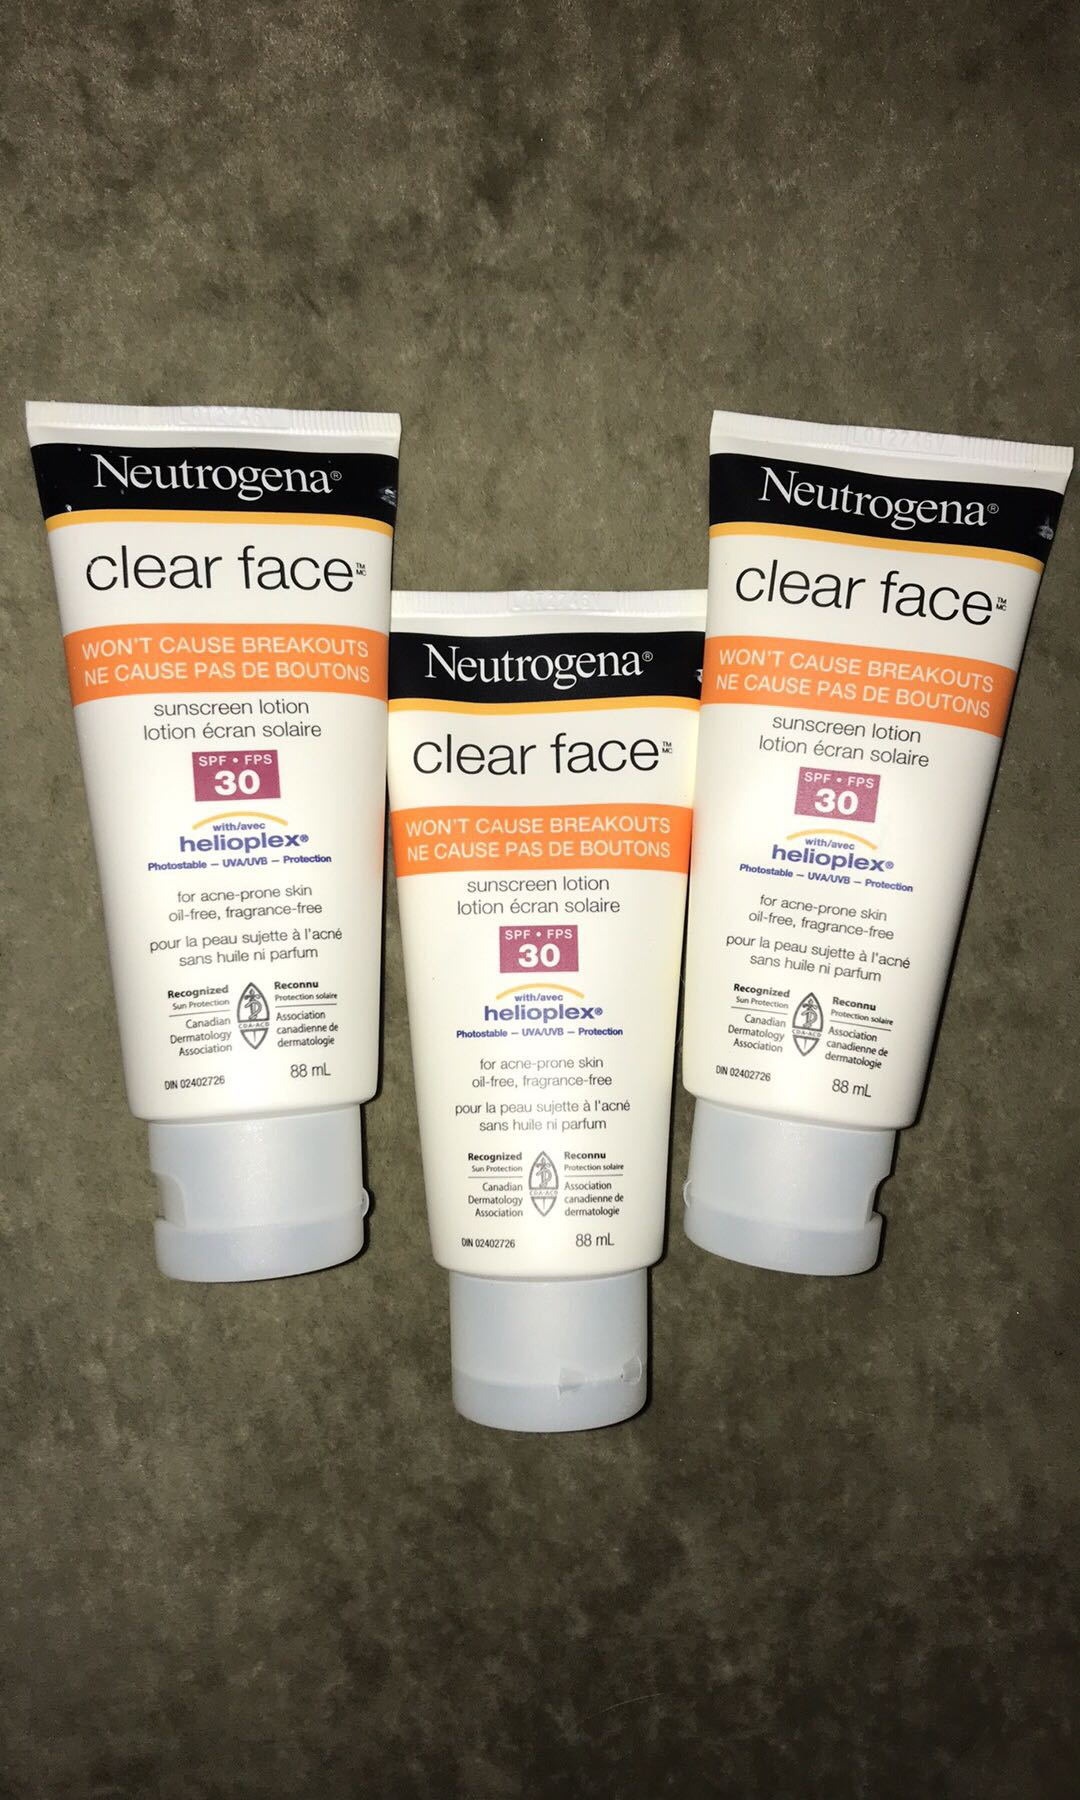 neutrogena sunscreen lotion